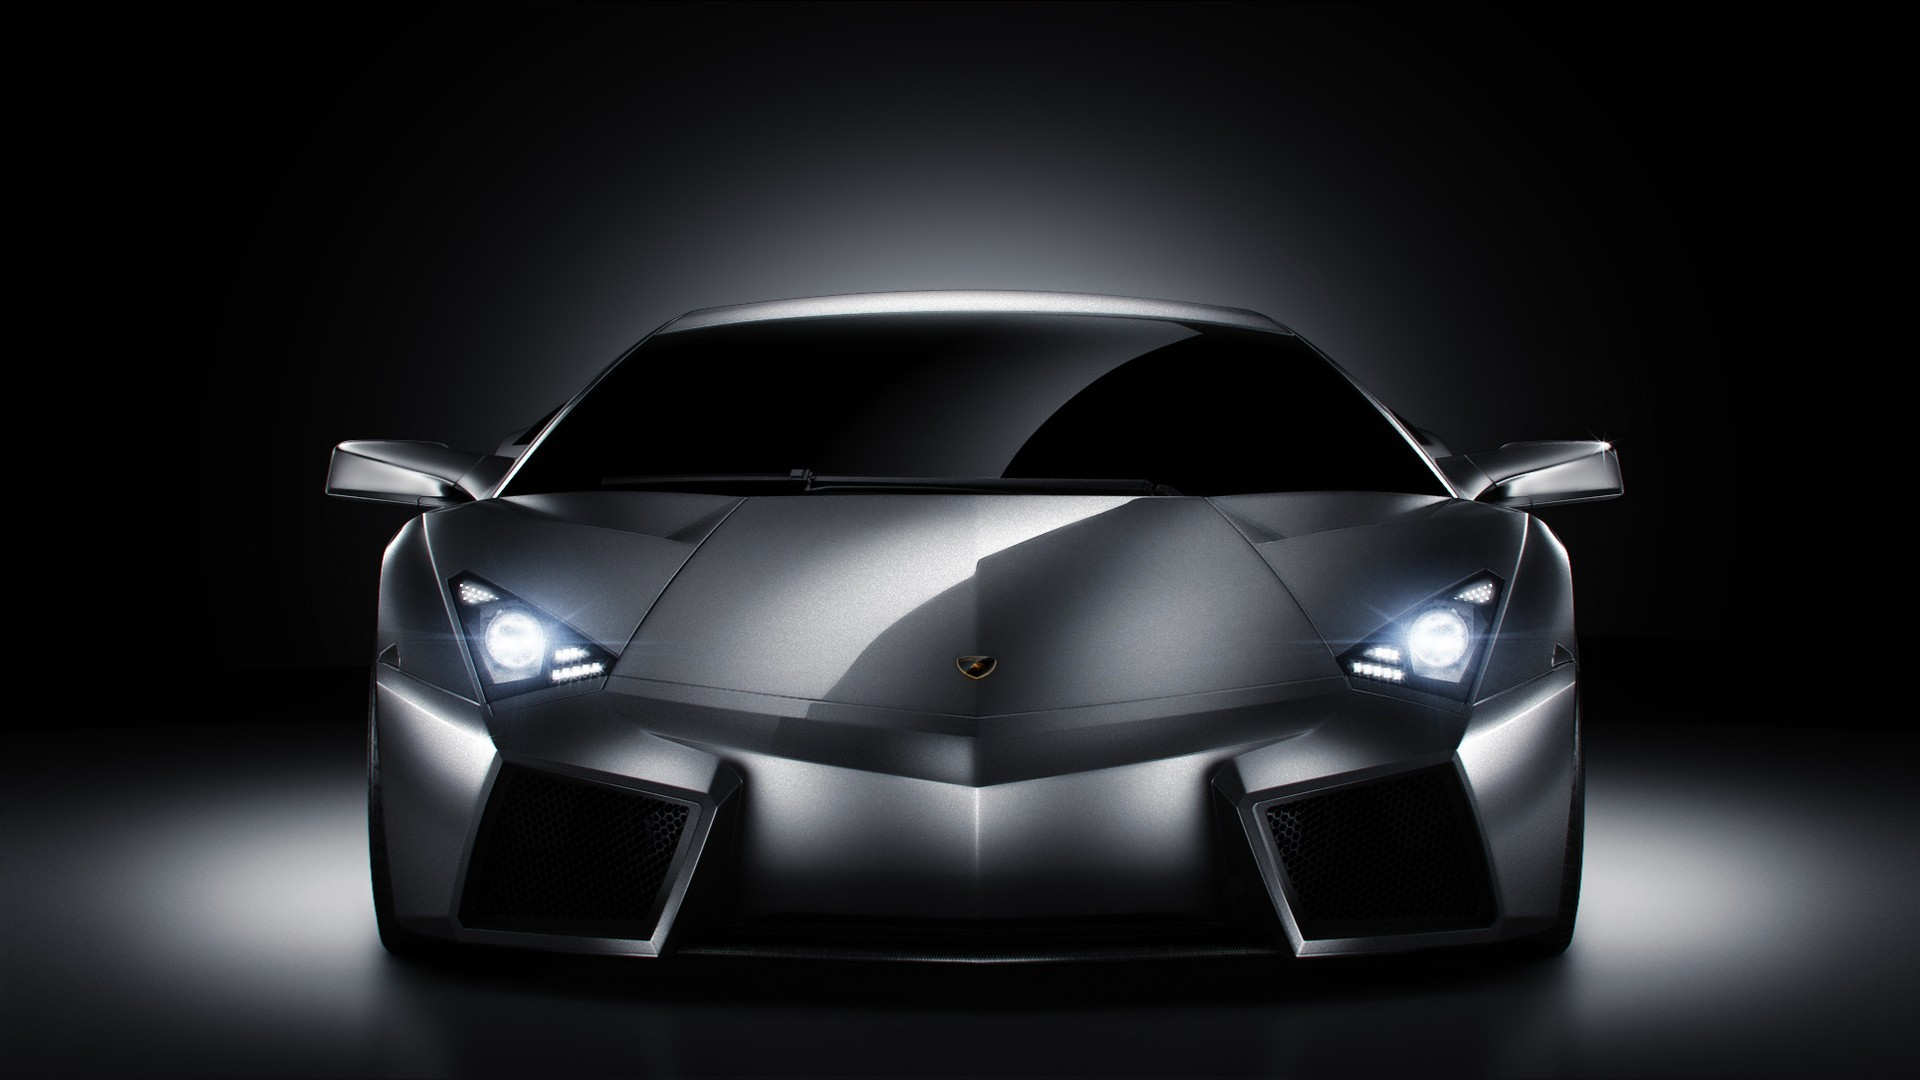 Best Wallpaper Mac Lamborghini - Lamborghini-Reventon-Wallpapers-HD  Photograph_673969.jpg